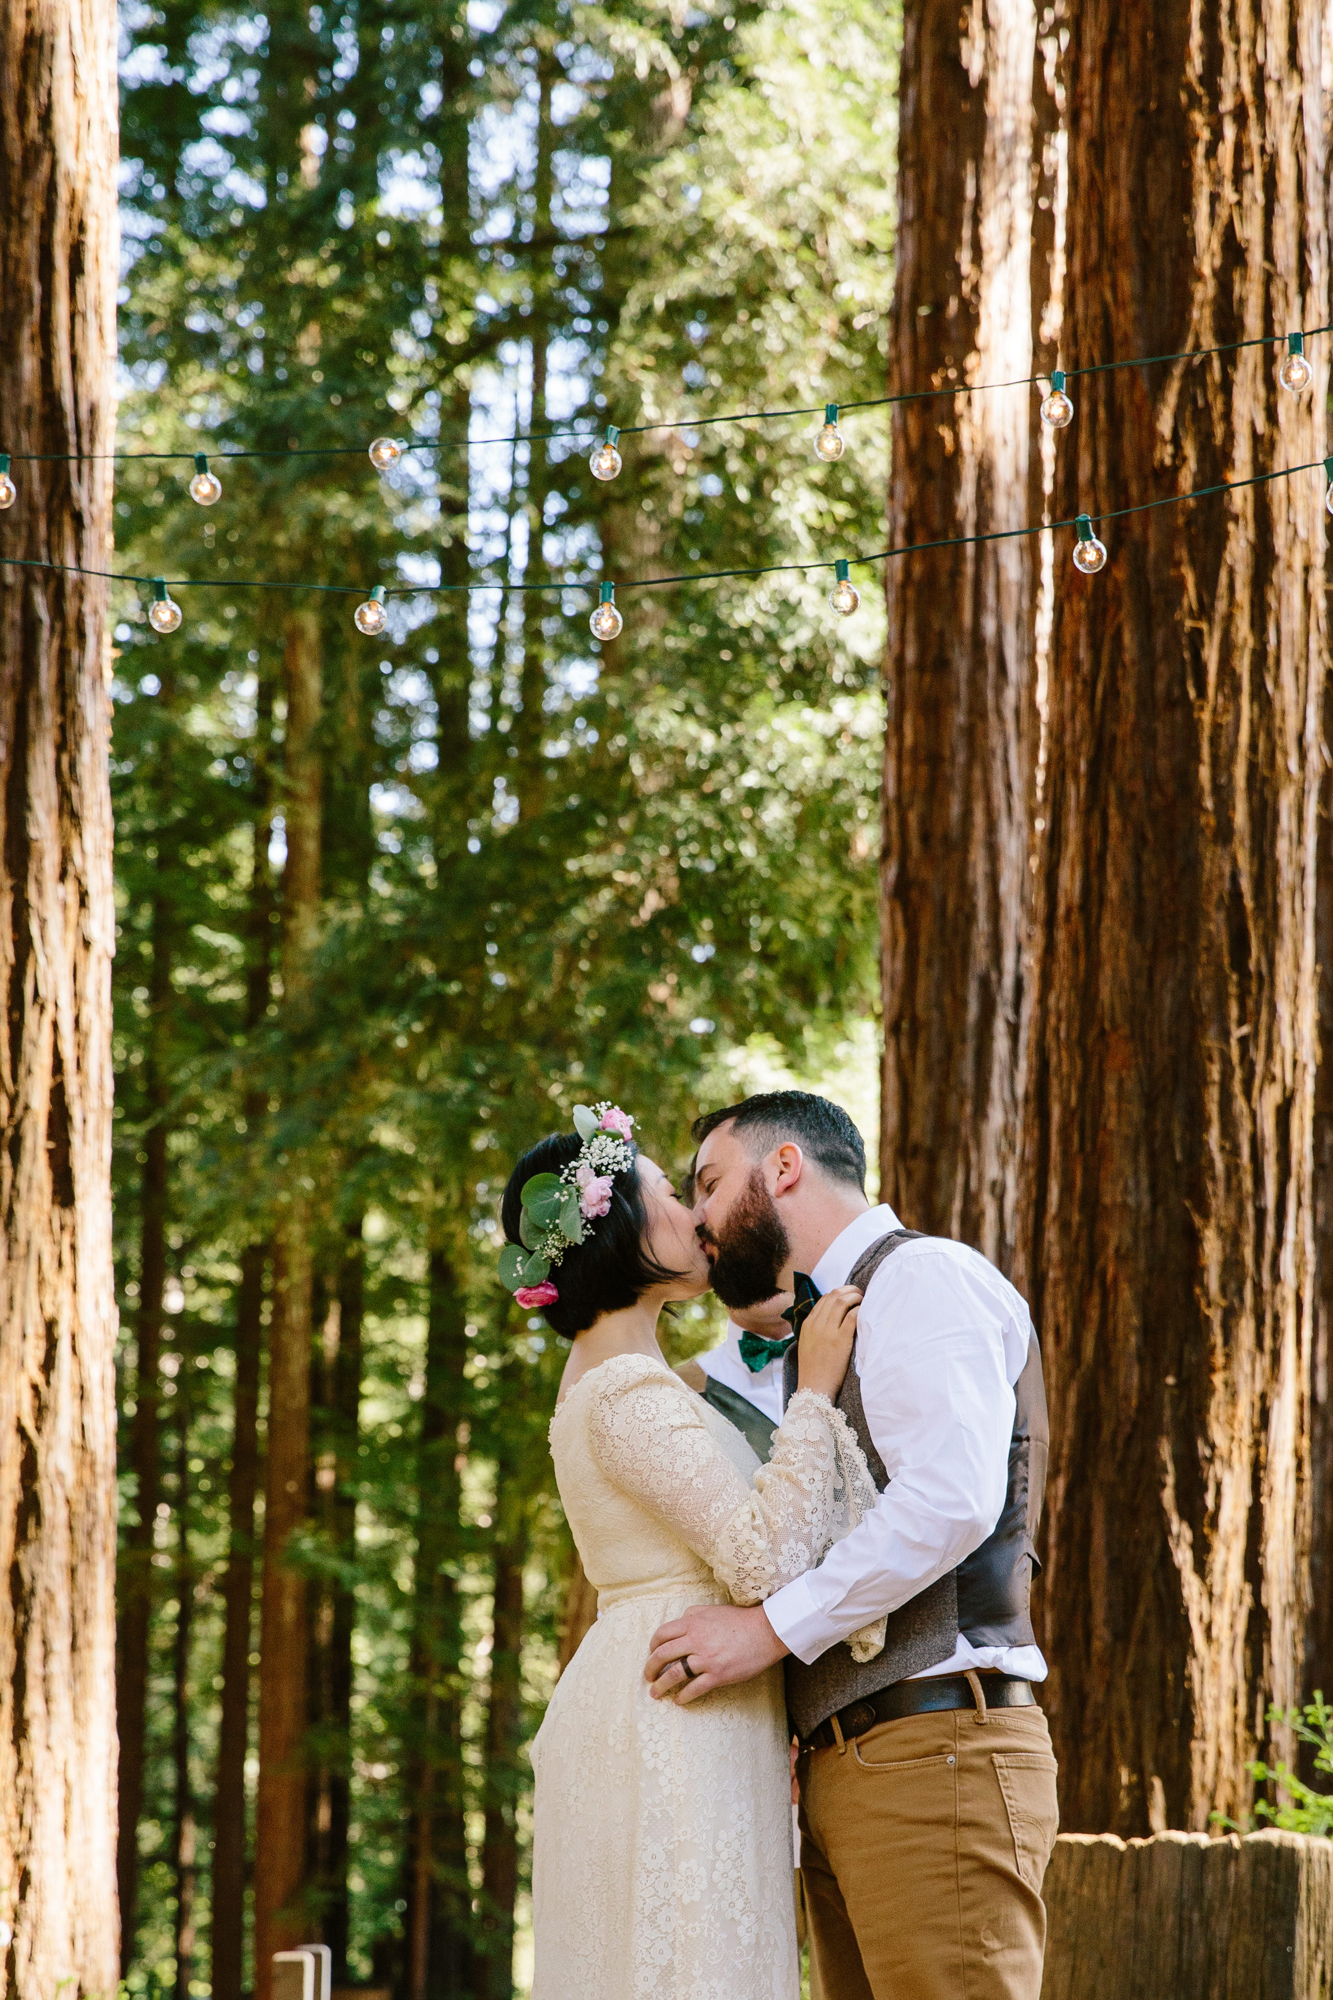 Wedding in Redwood Trees of Santa Cruz, California